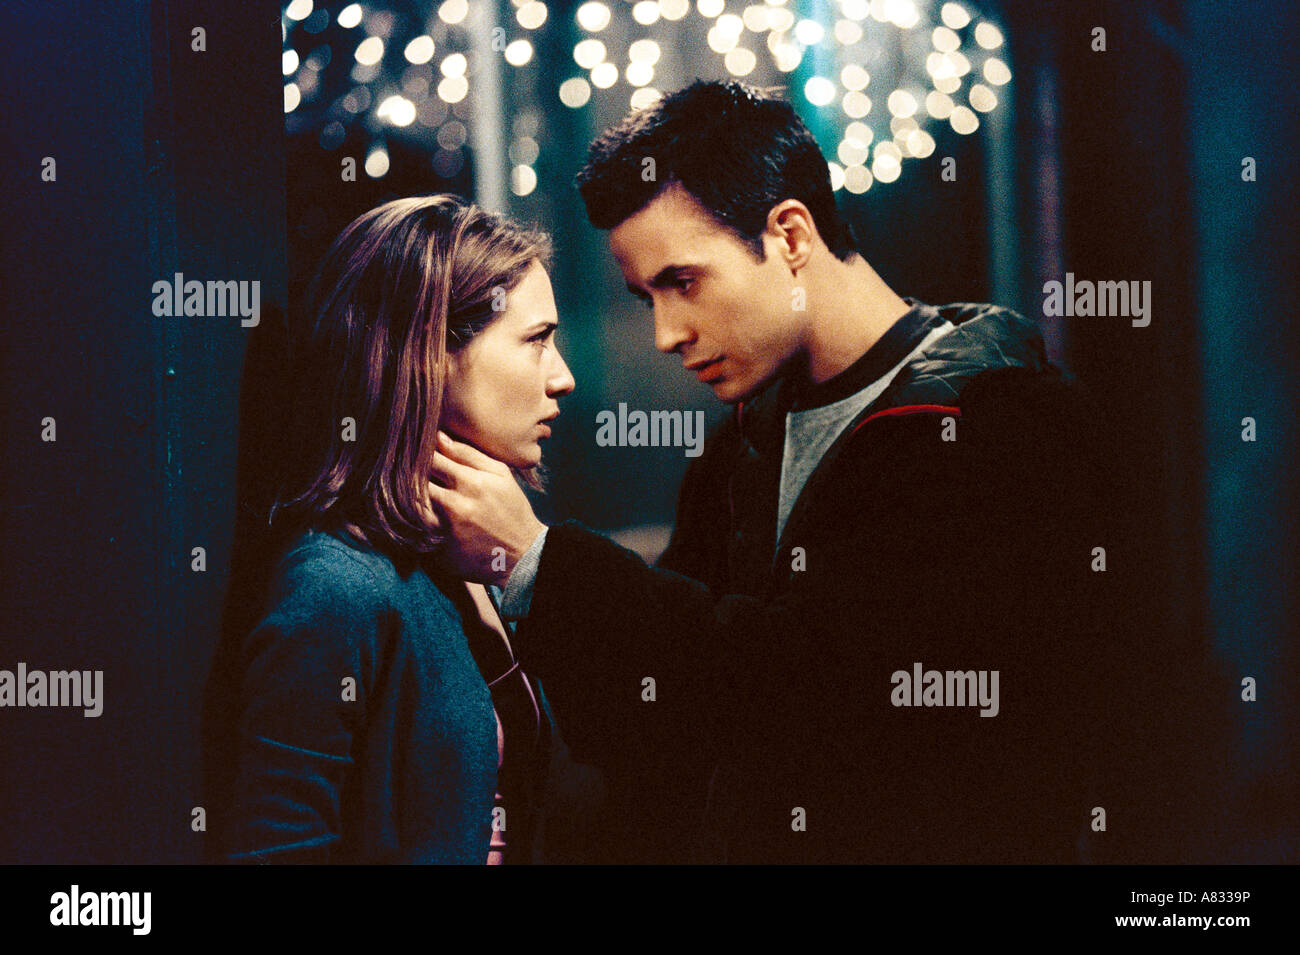 BOYS AND GIRLS - 2000 Punch Production film with Claire Forlani and Freddie Prince Jr - Stock Image